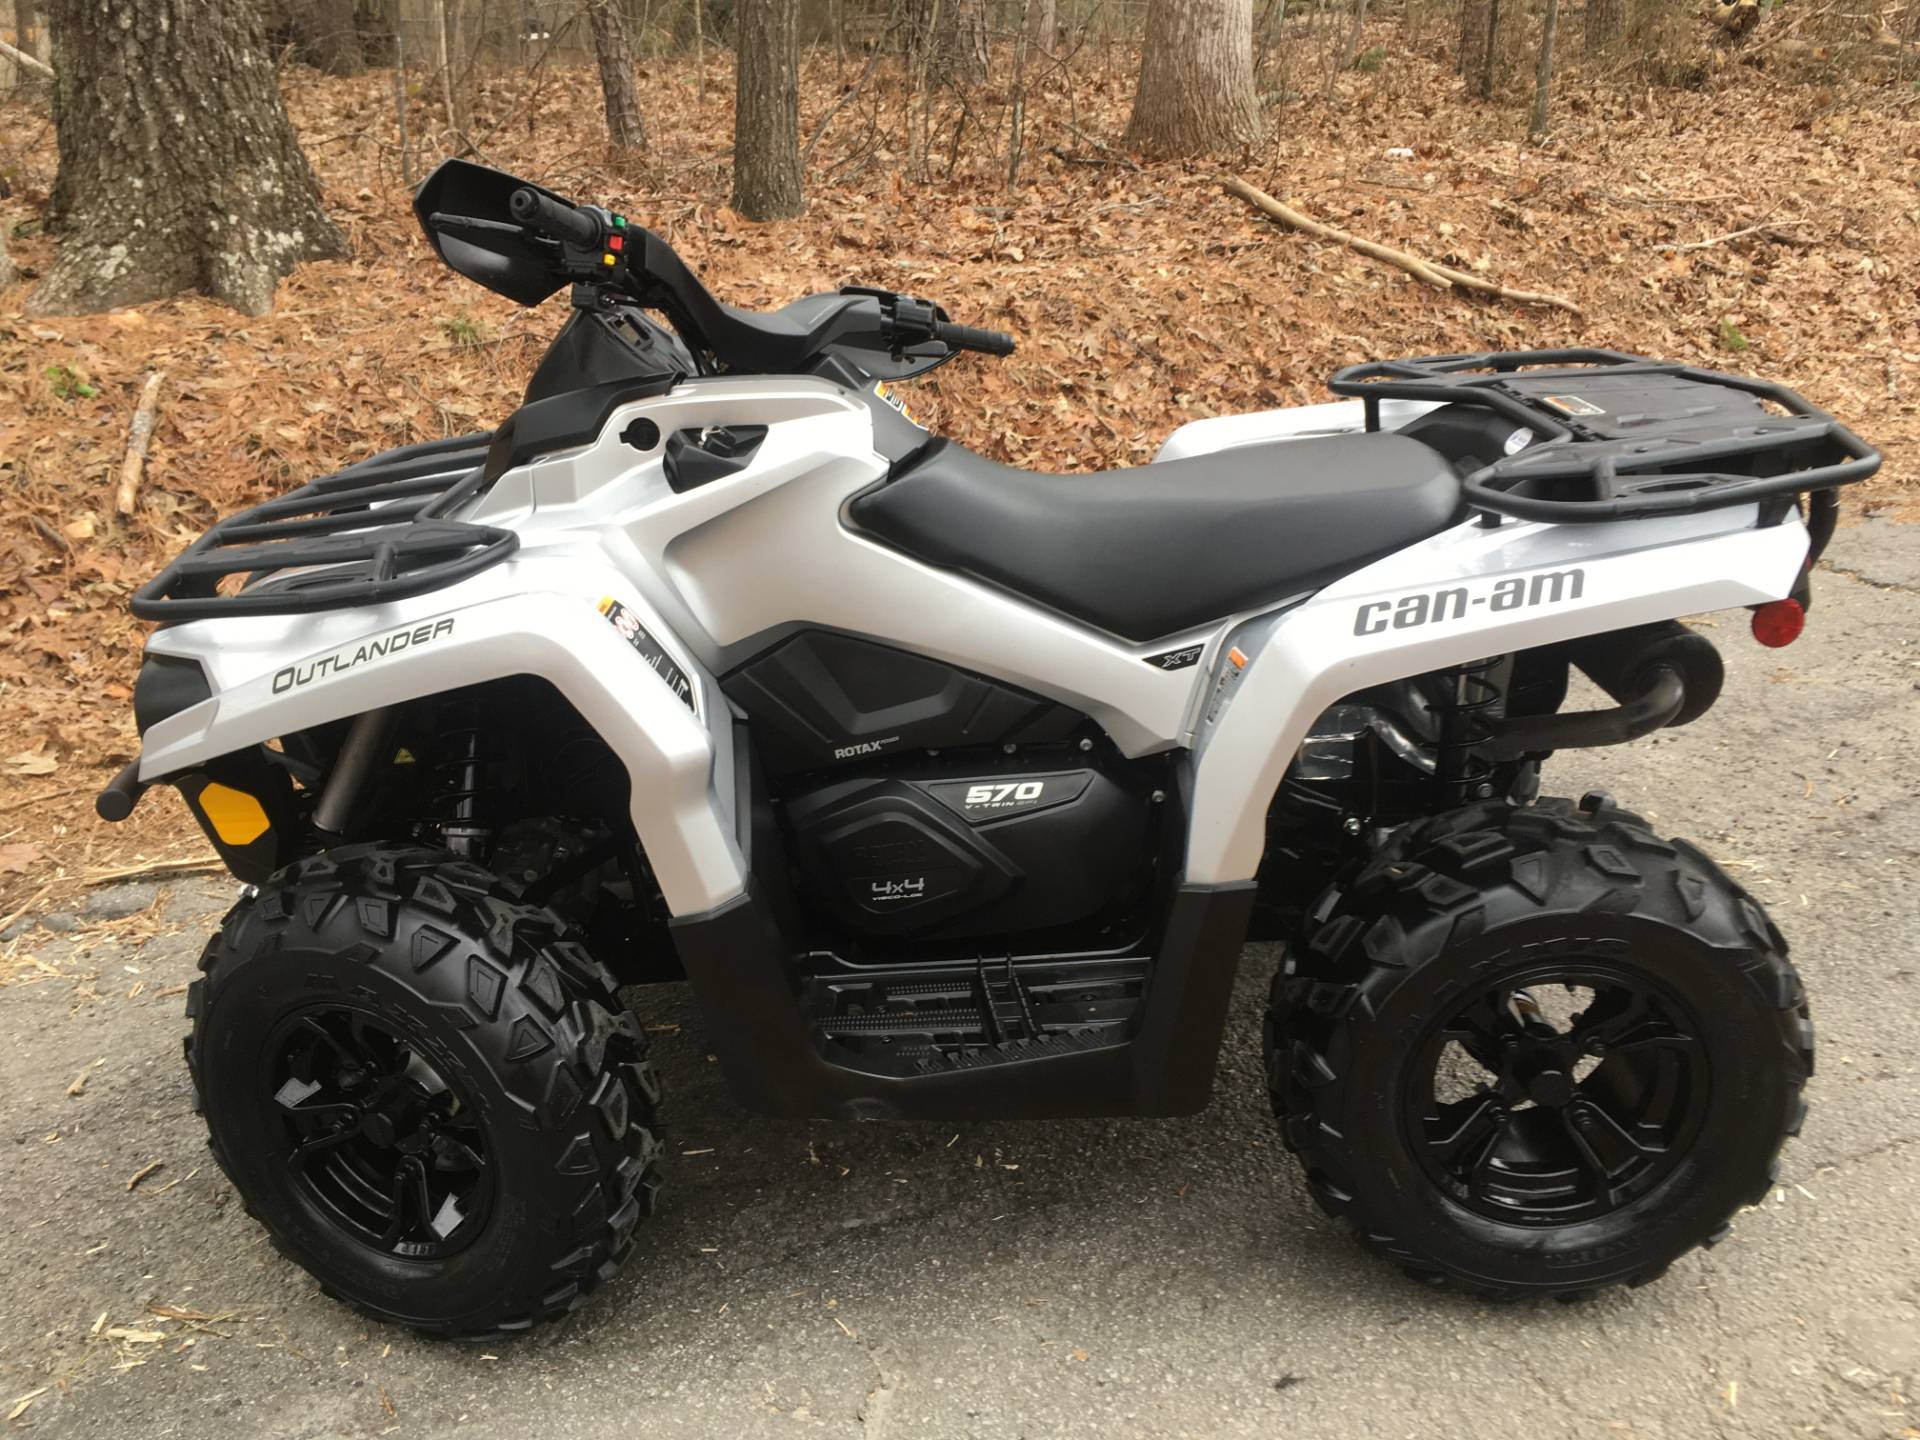 2019 CAN-AM OUTLANDER XT 570 in Woodstock, Georgia - Photo 2